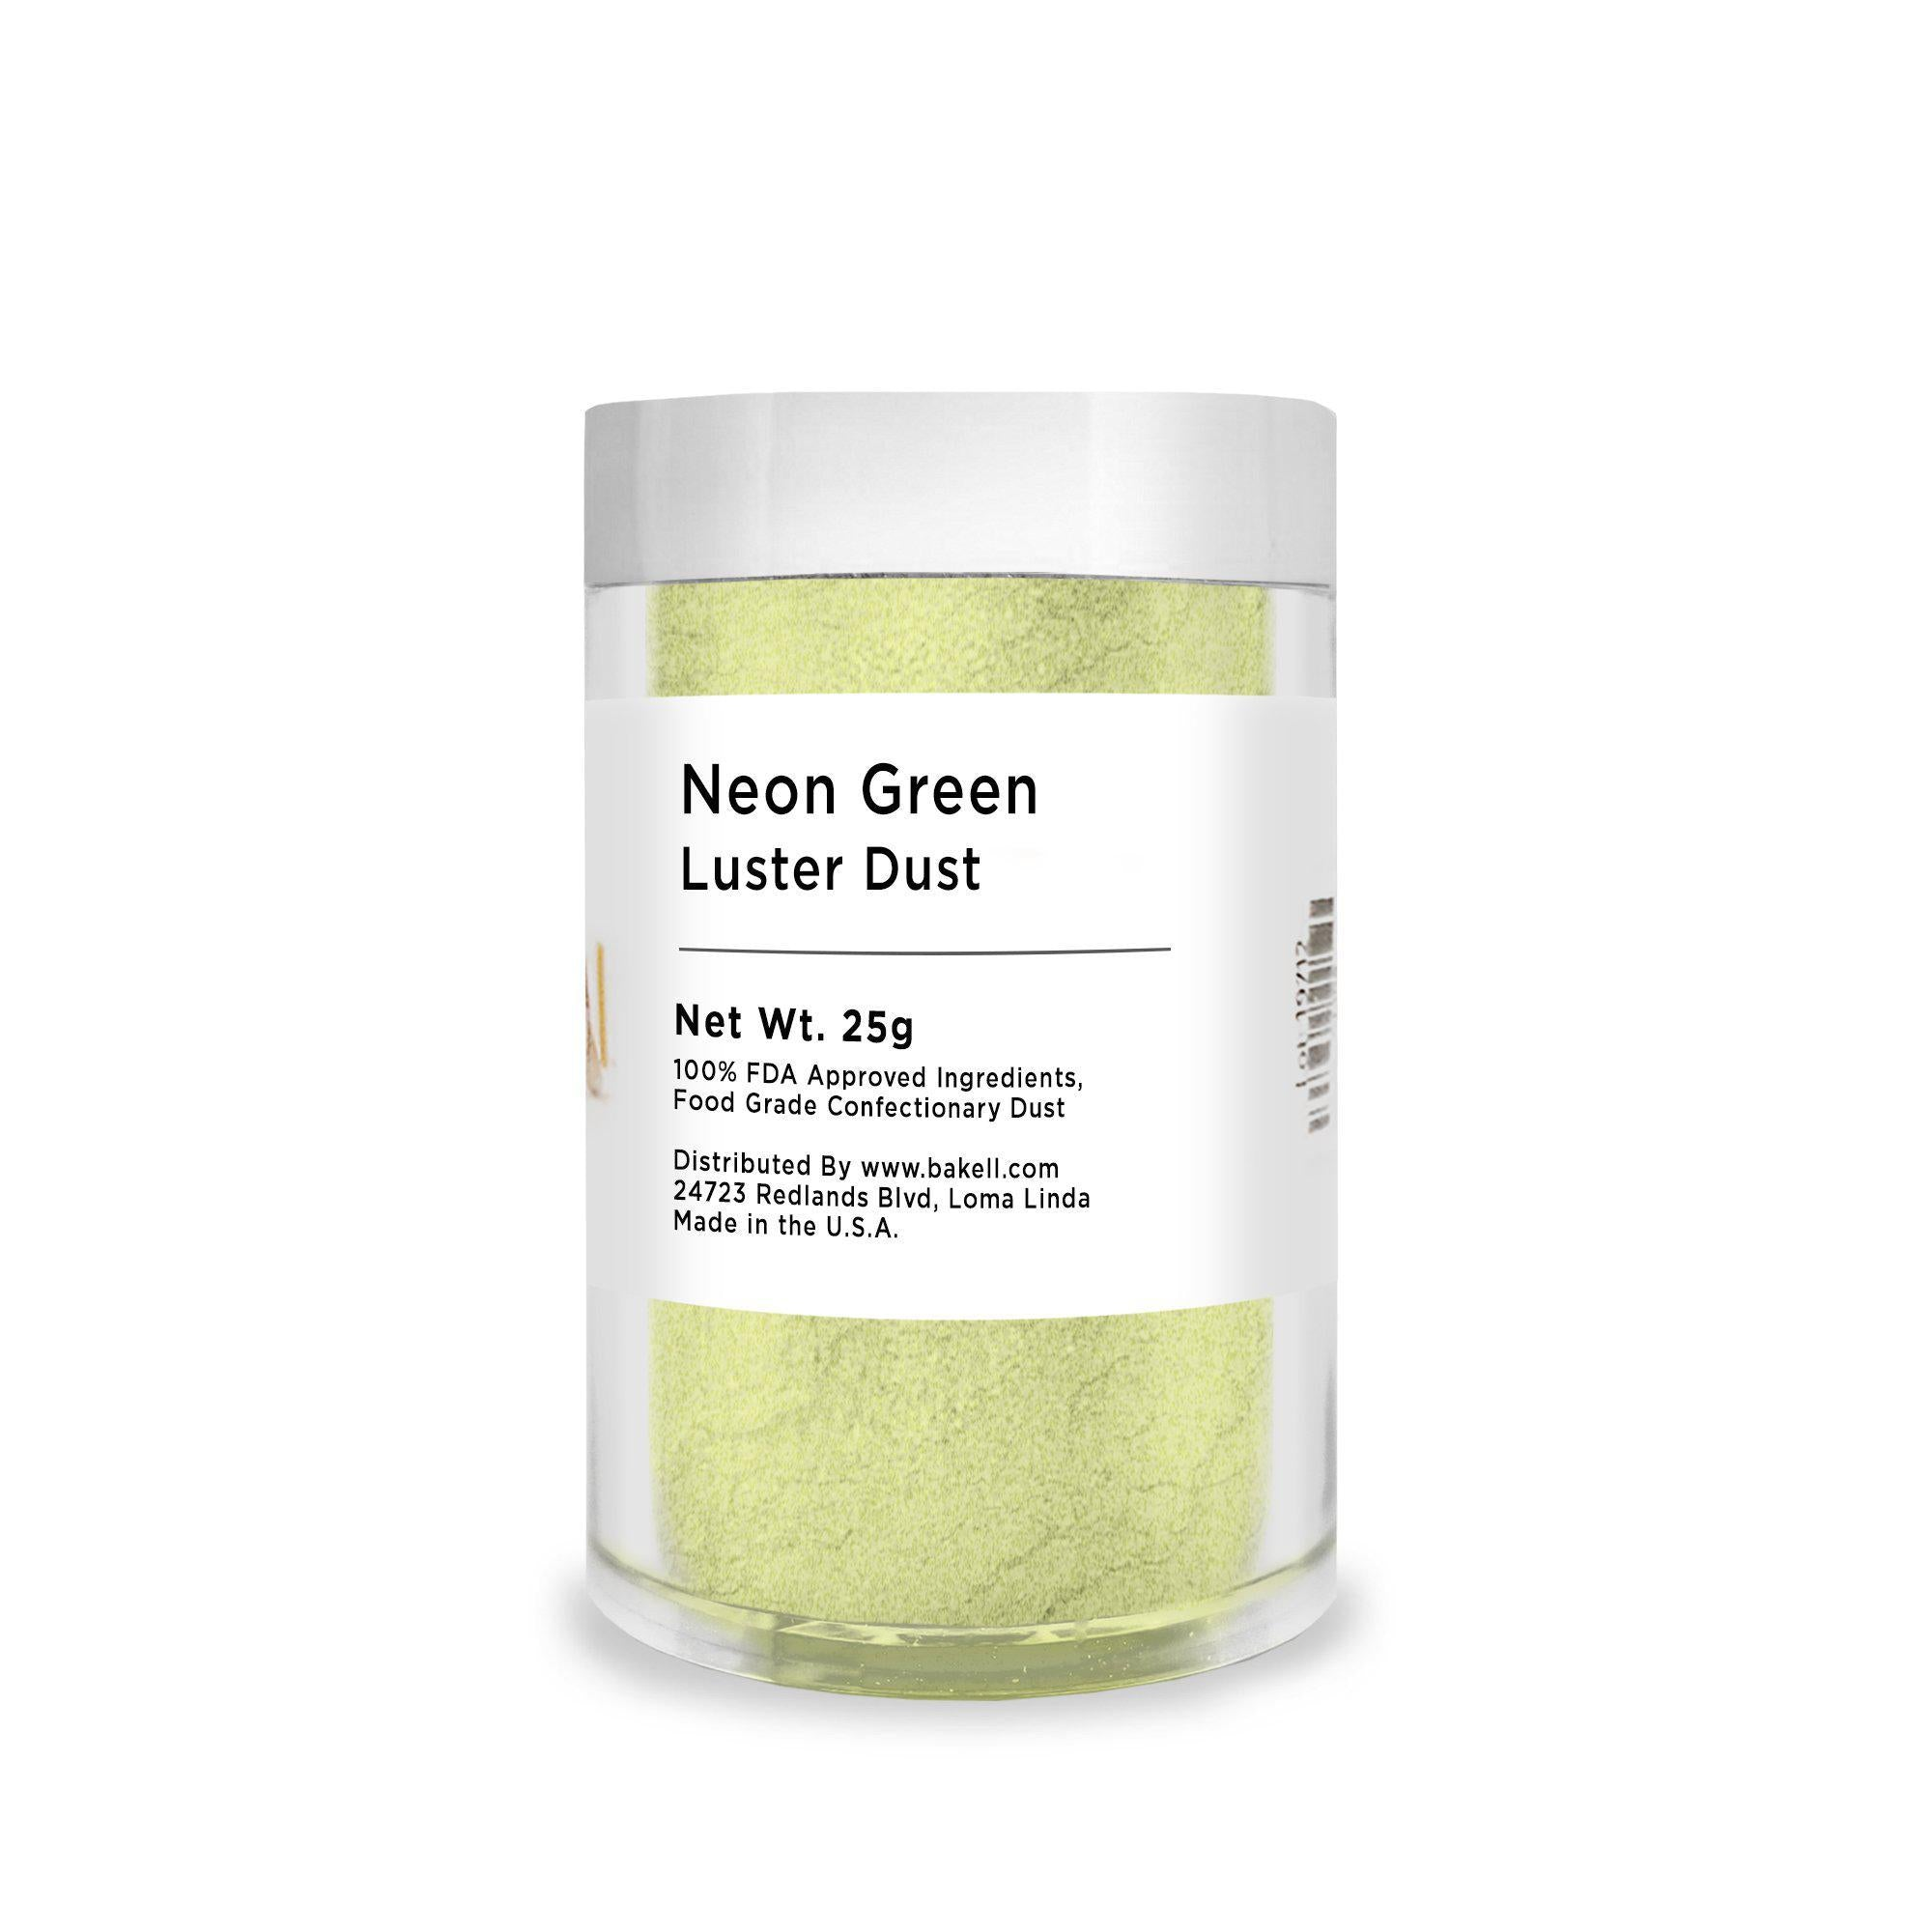 Neon Green Edible Luster Dust | Lime Green Luster Dust | Kosher Certified Luster Dust | FDA Approved Glitter | Green Edible Paint | Bakell.com